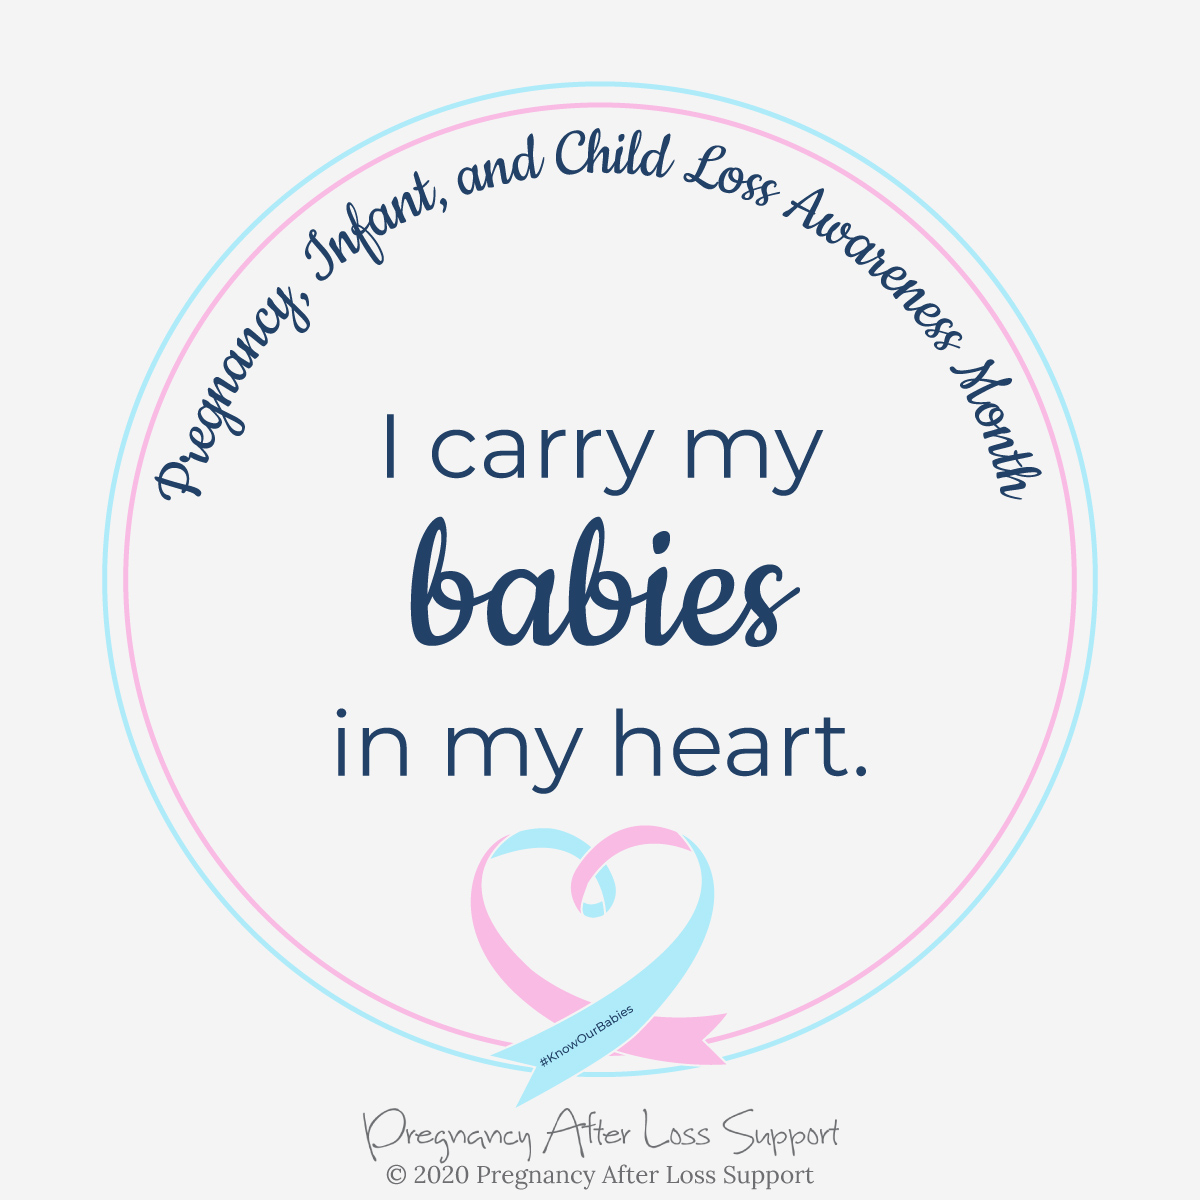 I carry my babies in my heart - Pregnancy, Infant, and Child Loss Awareness Month